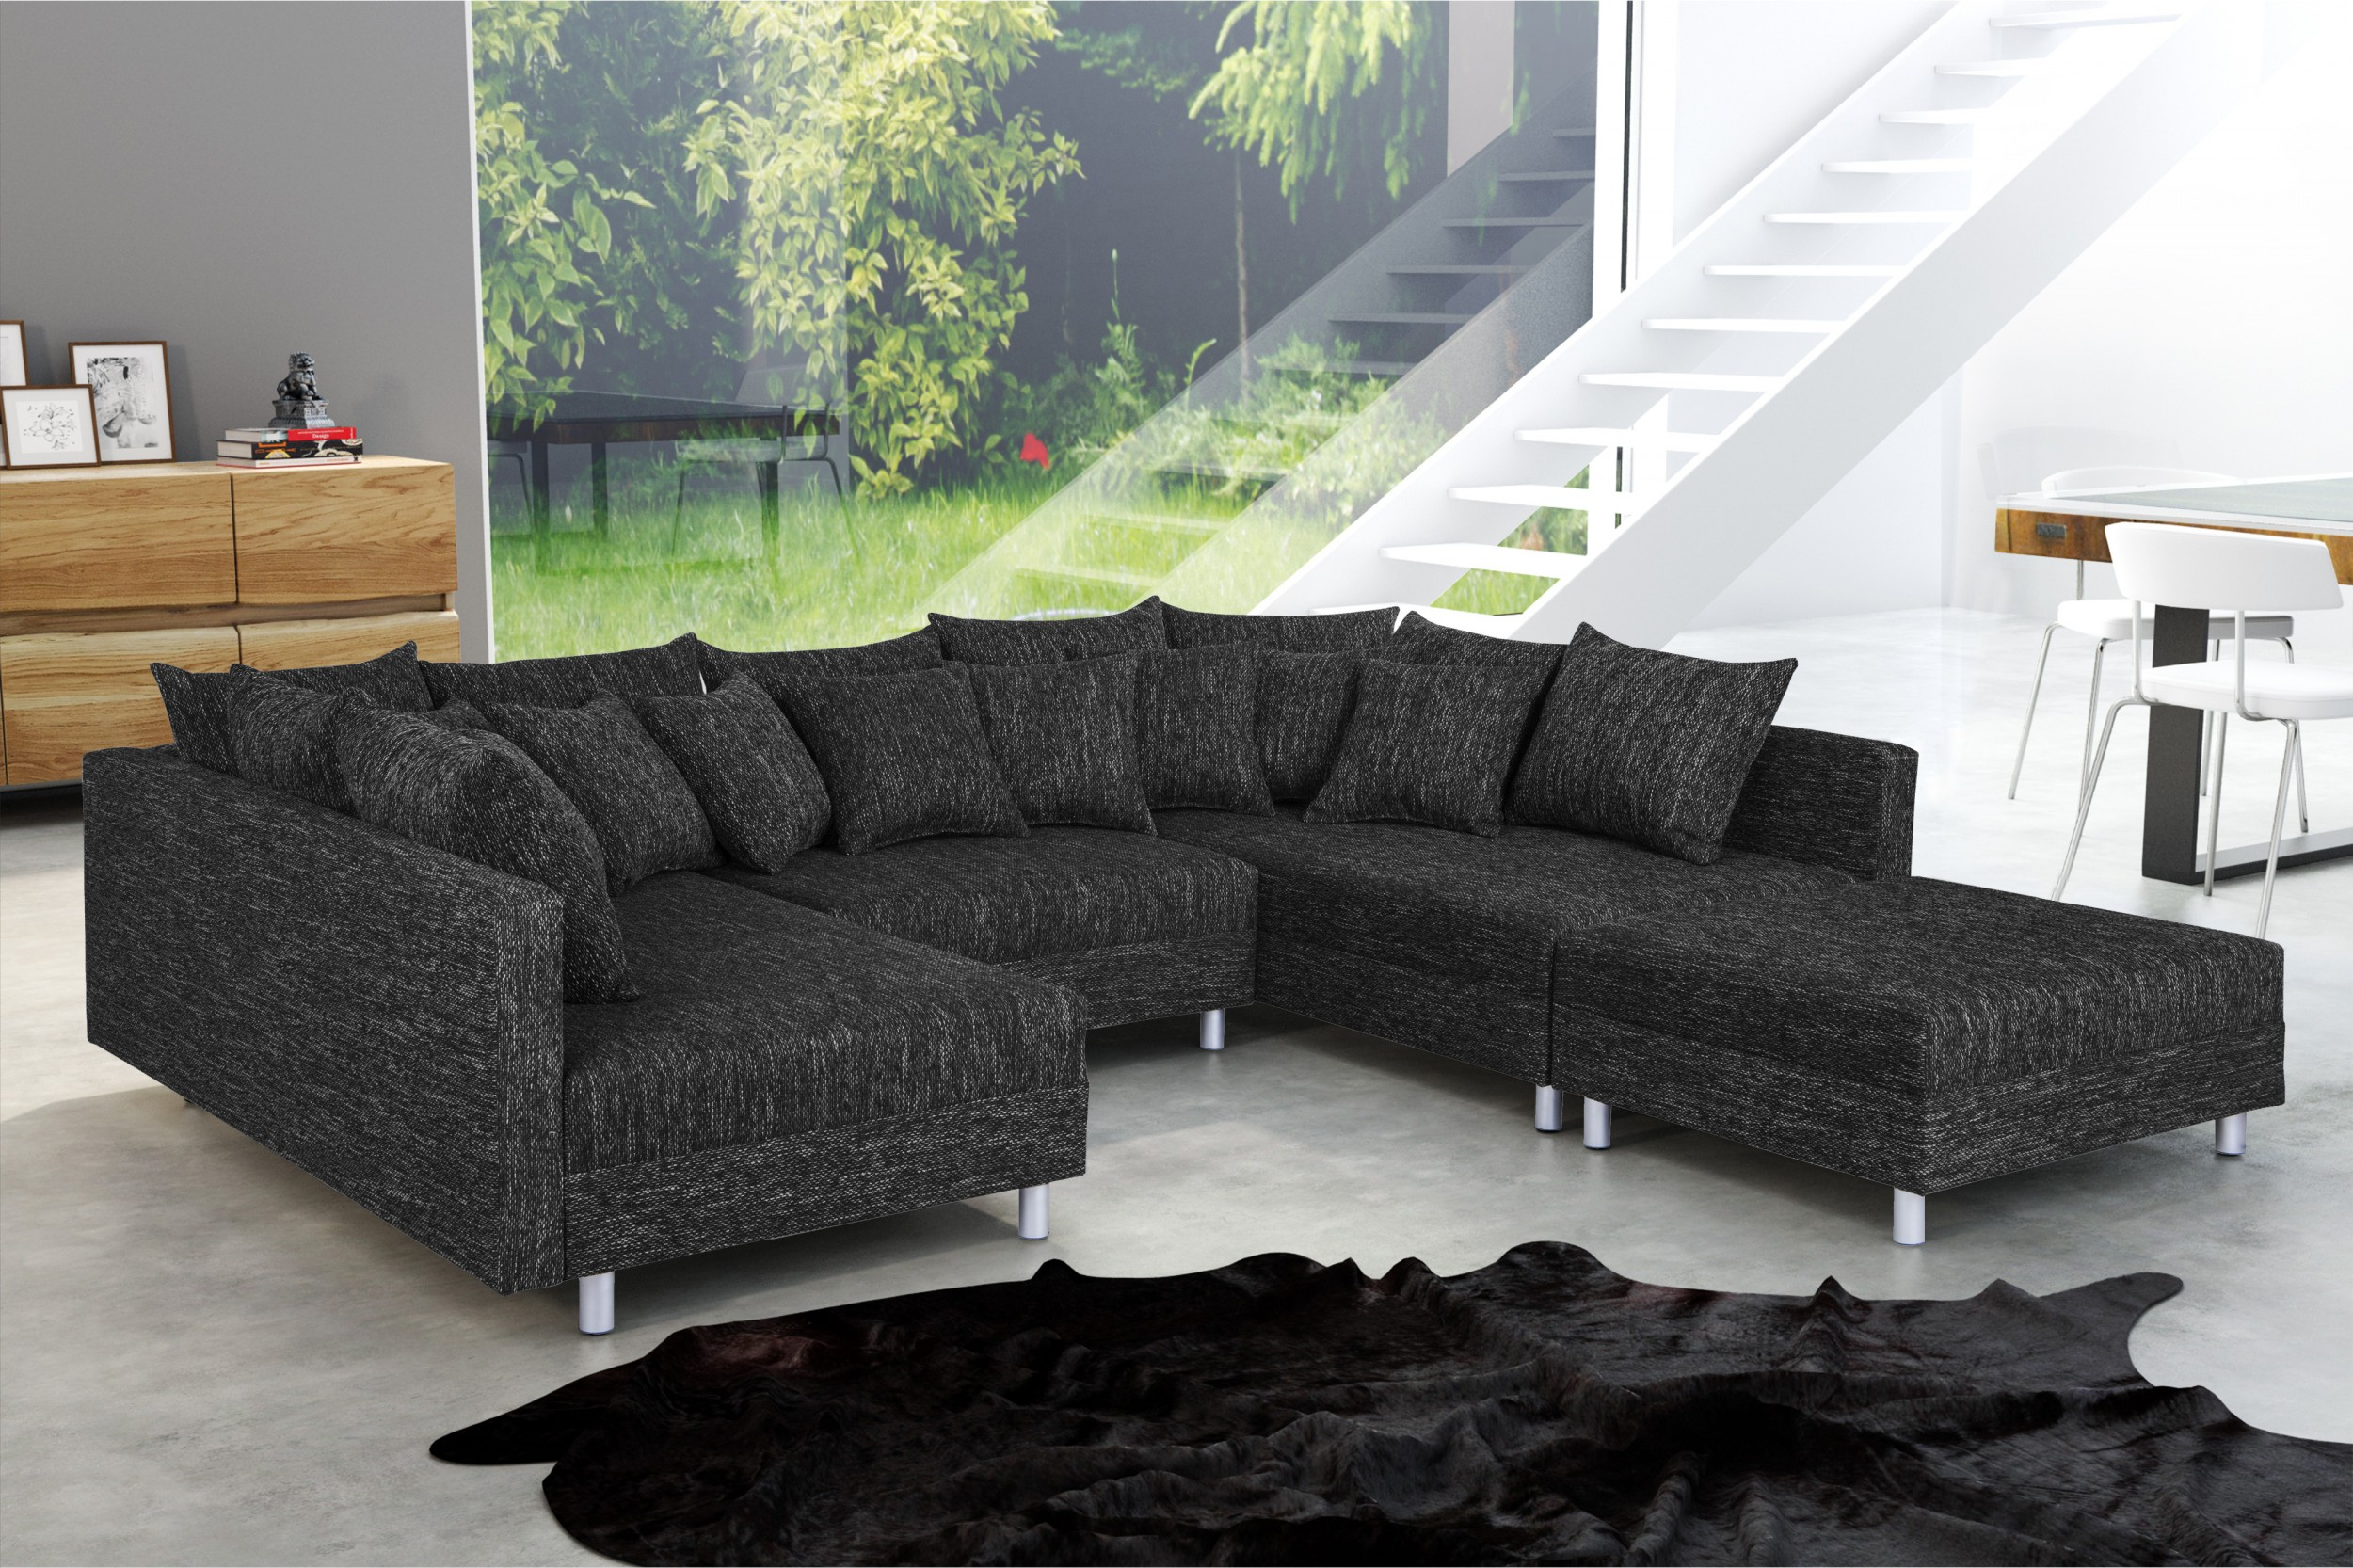 wohnlandschaft sofa couch ecksofa eckcouch in gewebestoff. Black Bedroom Furniture Sets. Home Design Ideas